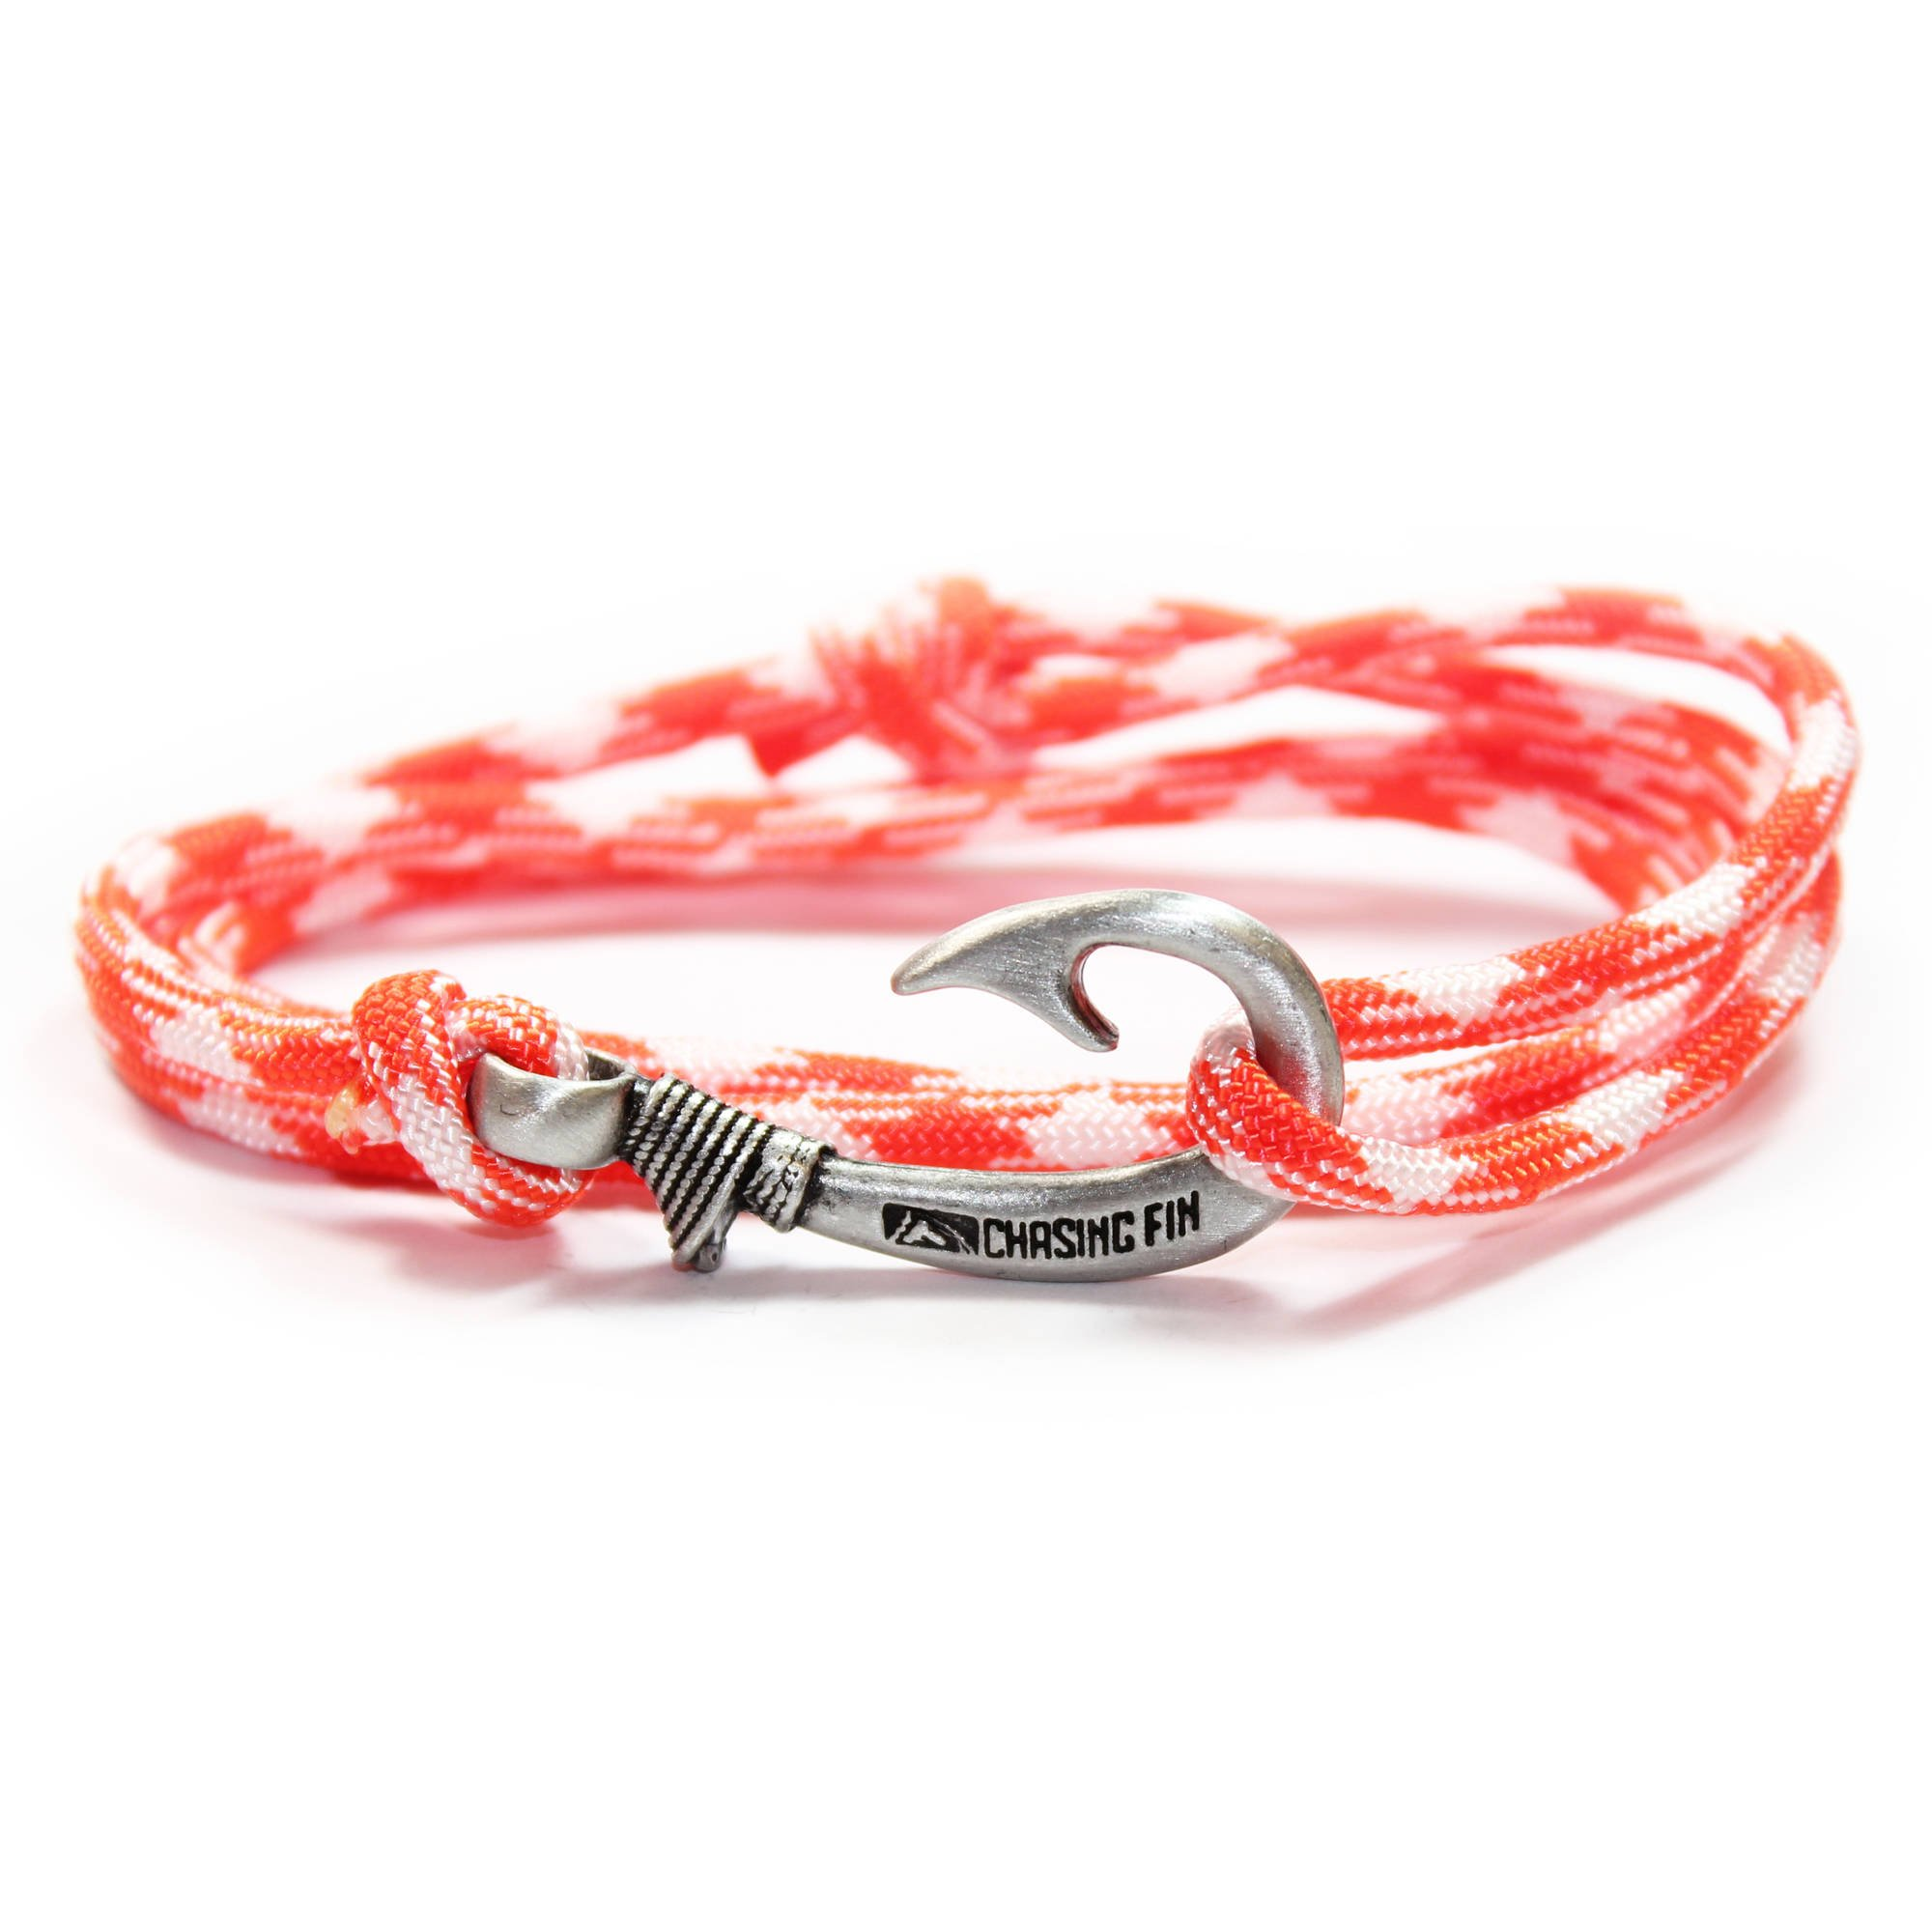 Chasing Fin Adjustable Bracelet 550 Military Paracord with Fish Hook Pendant, Creamsicle